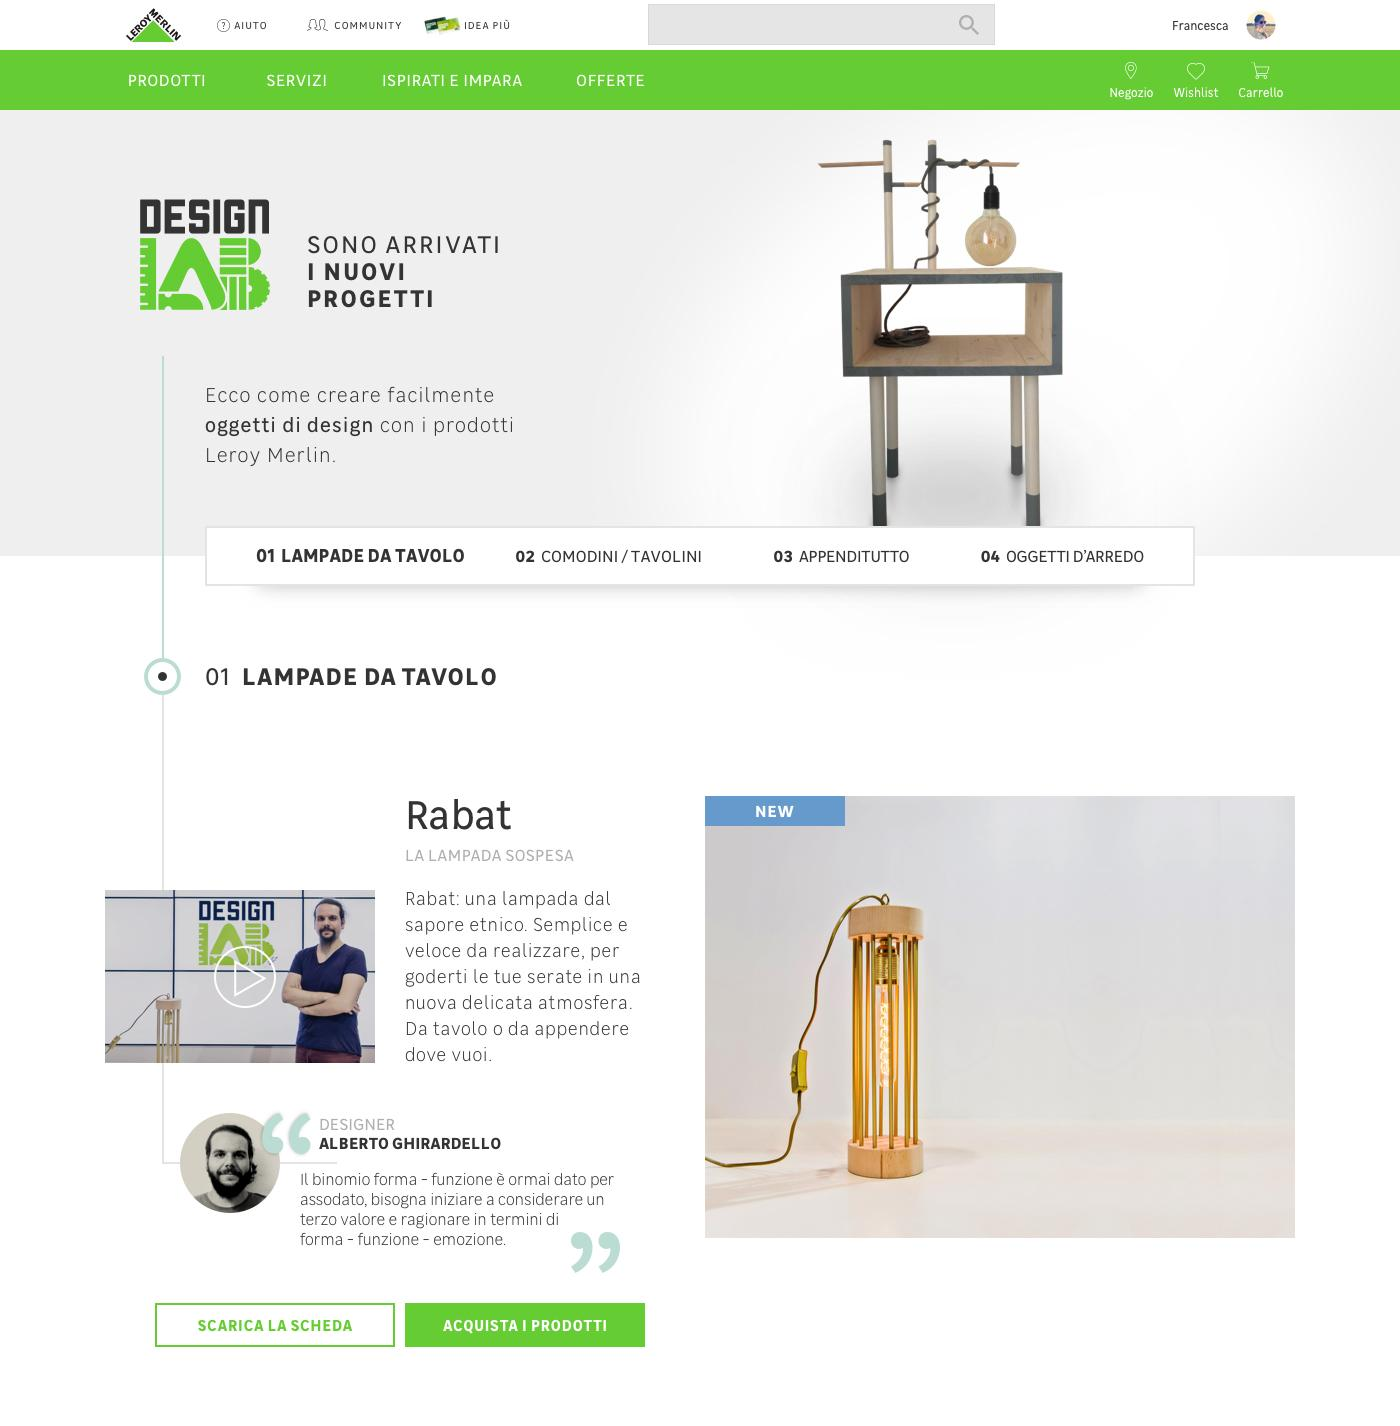 Design lab: how to develop project and tutorial for the DIY